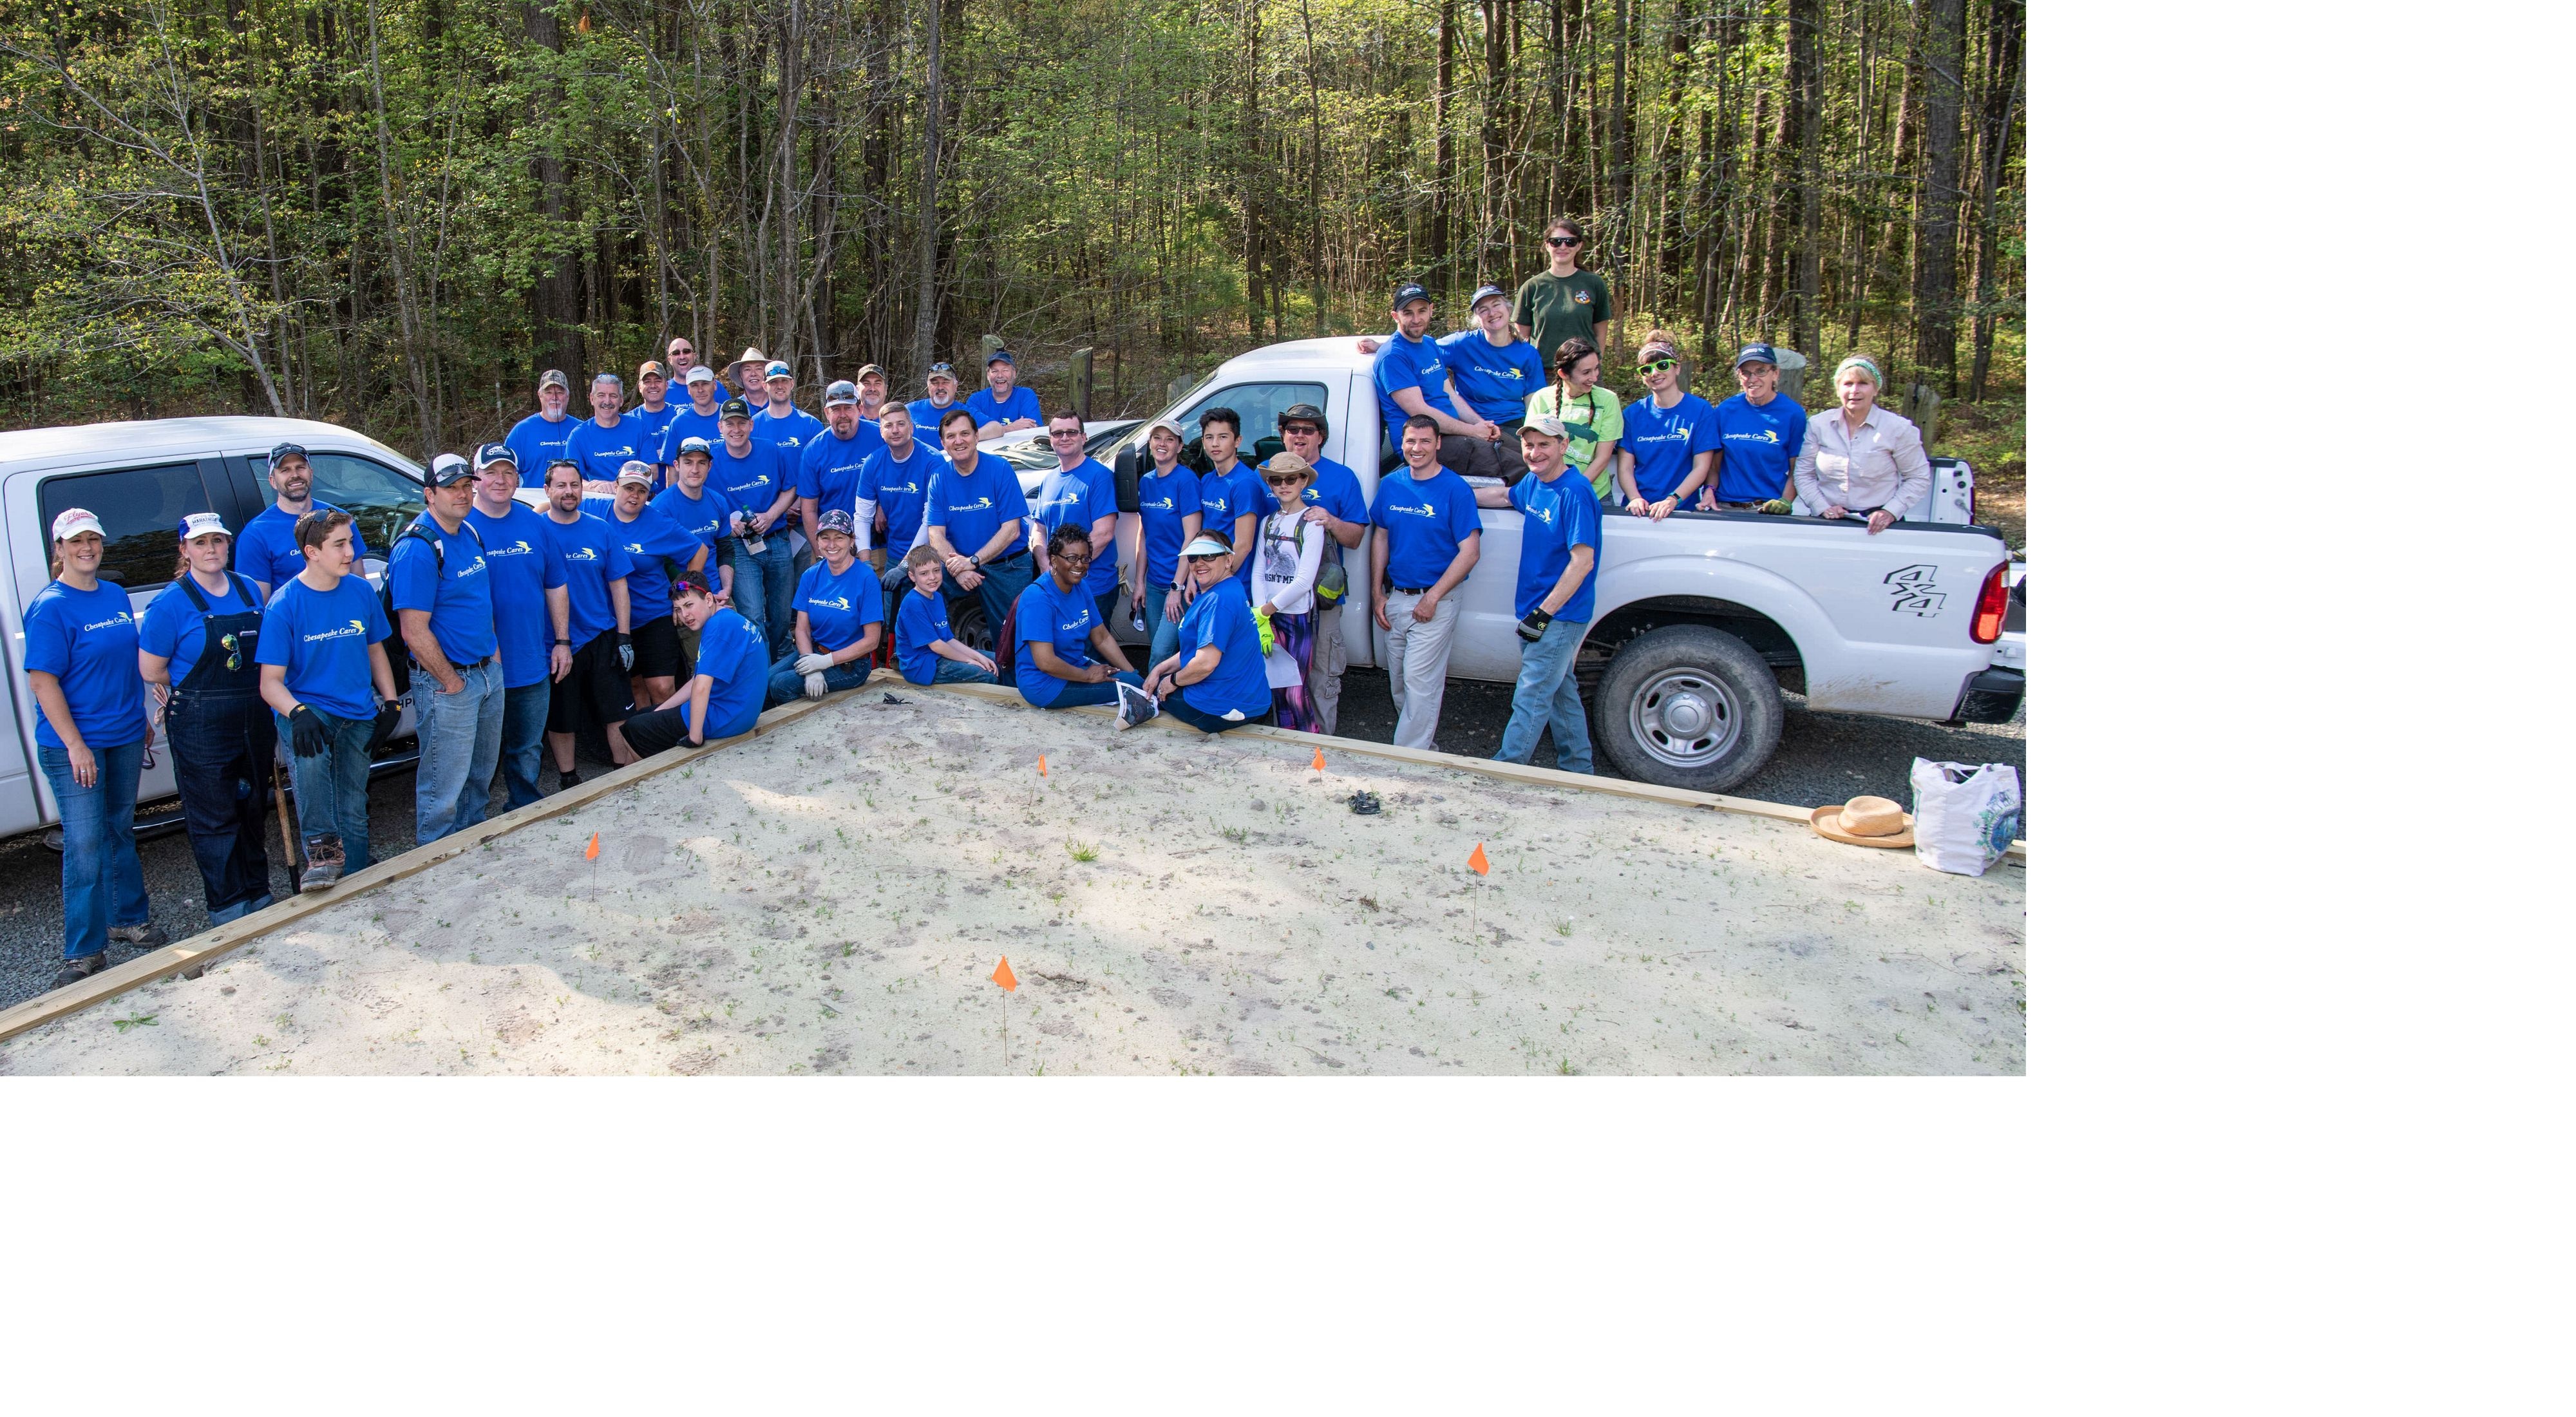 Group Photo from a volunteer day at Ponders Tract with Chesapeake Utilities.